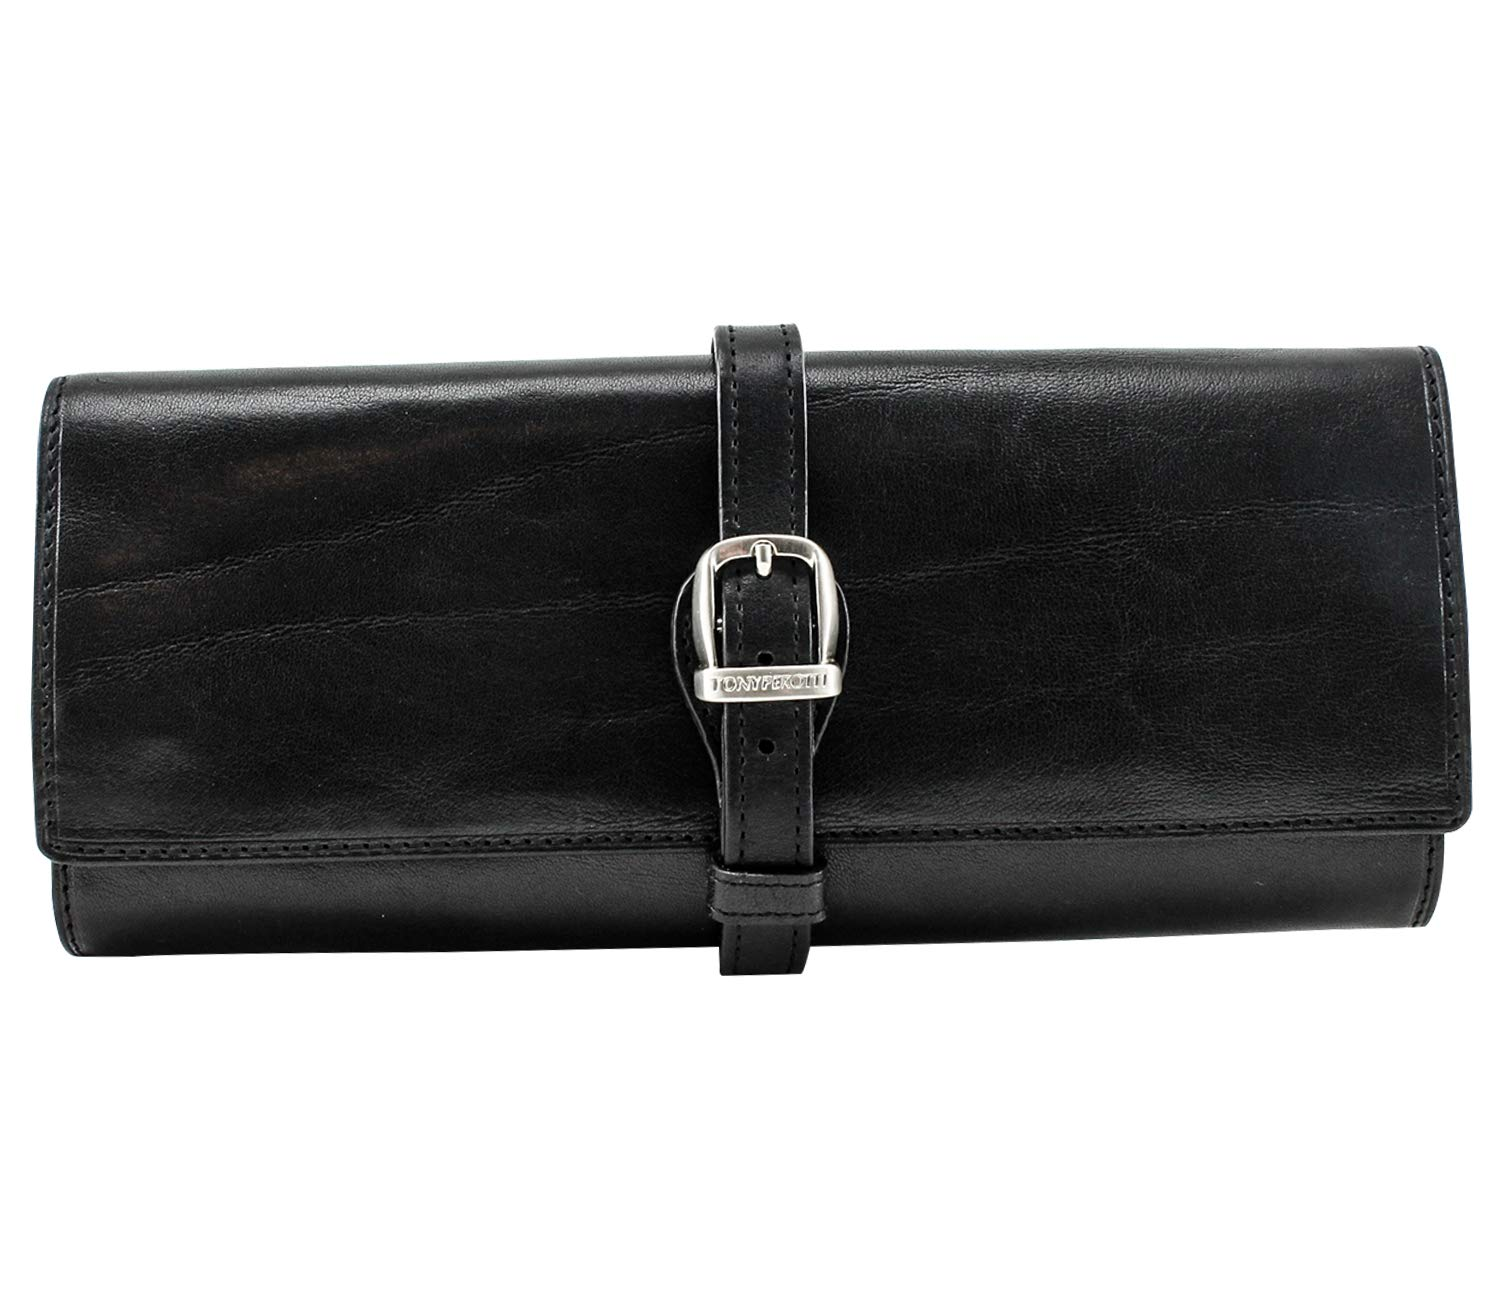 CUSTOM PERSONALIZED INITIALS ENGRAVING Tony Perotti Womens Italian Bull Leather Grande Jewelry Roll Travel Organizer in Black